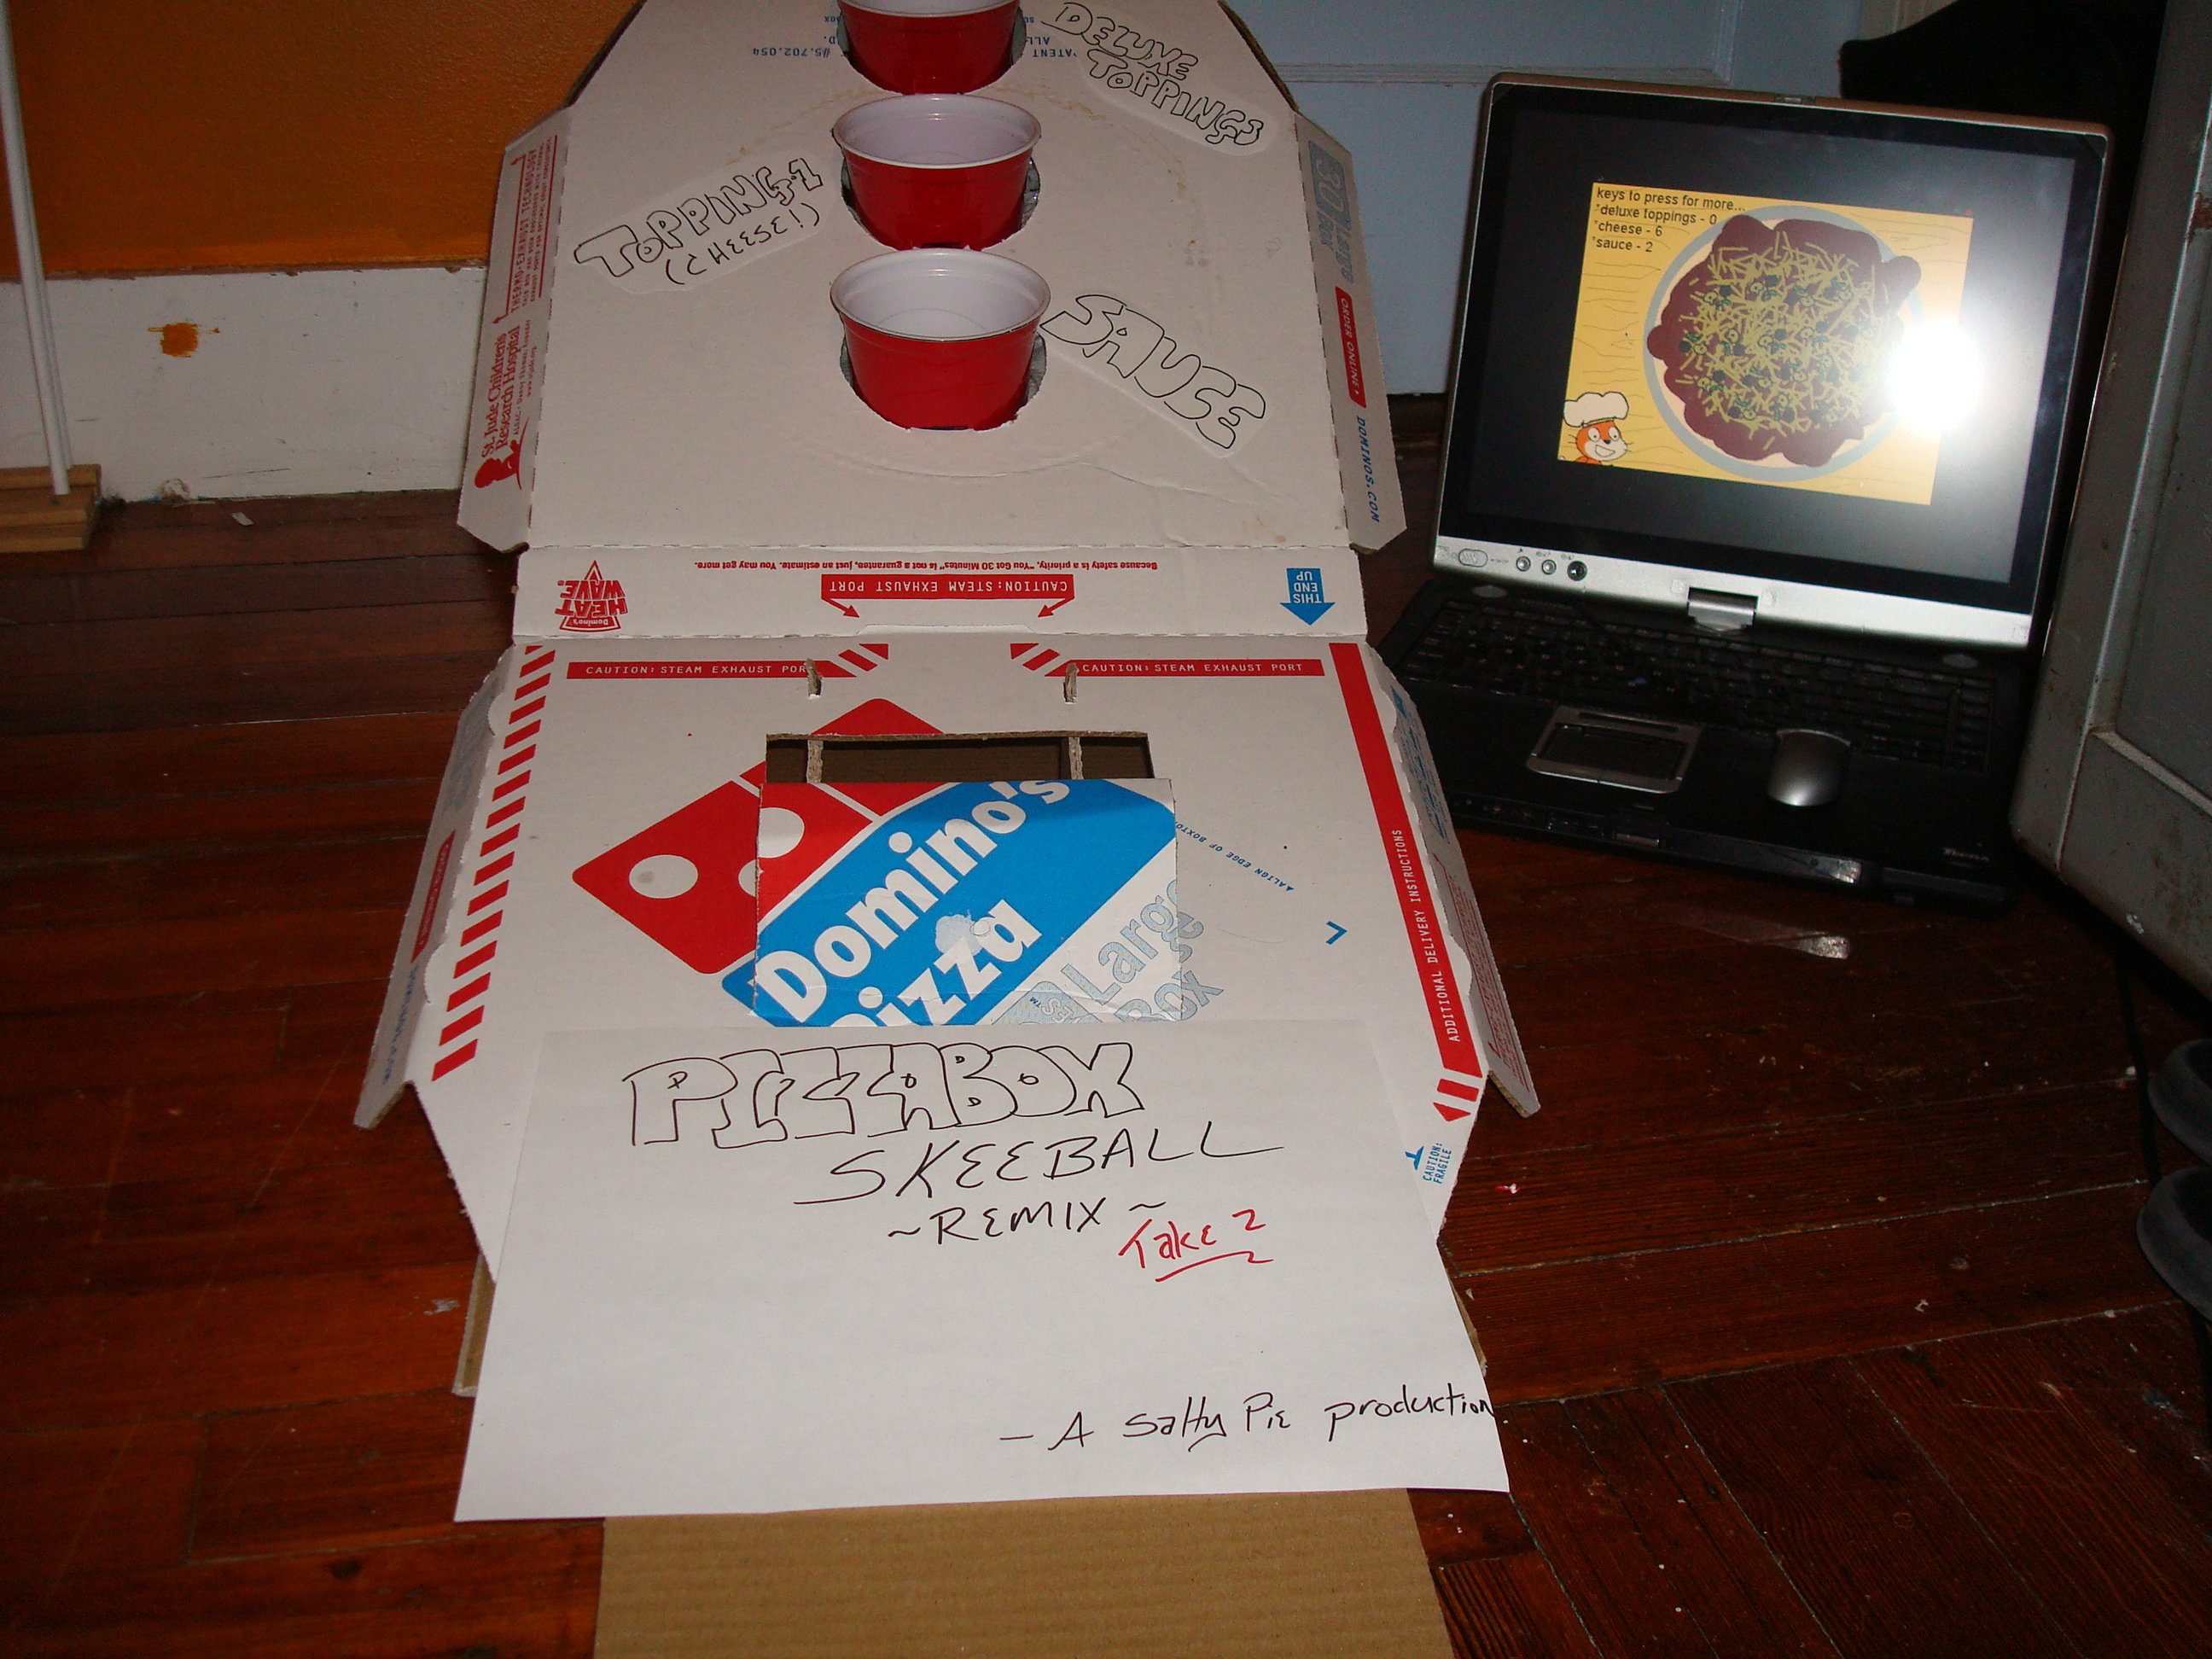 Make Skeeball-inspired Games Using Pizza Boxes, Party Favors, and a PC